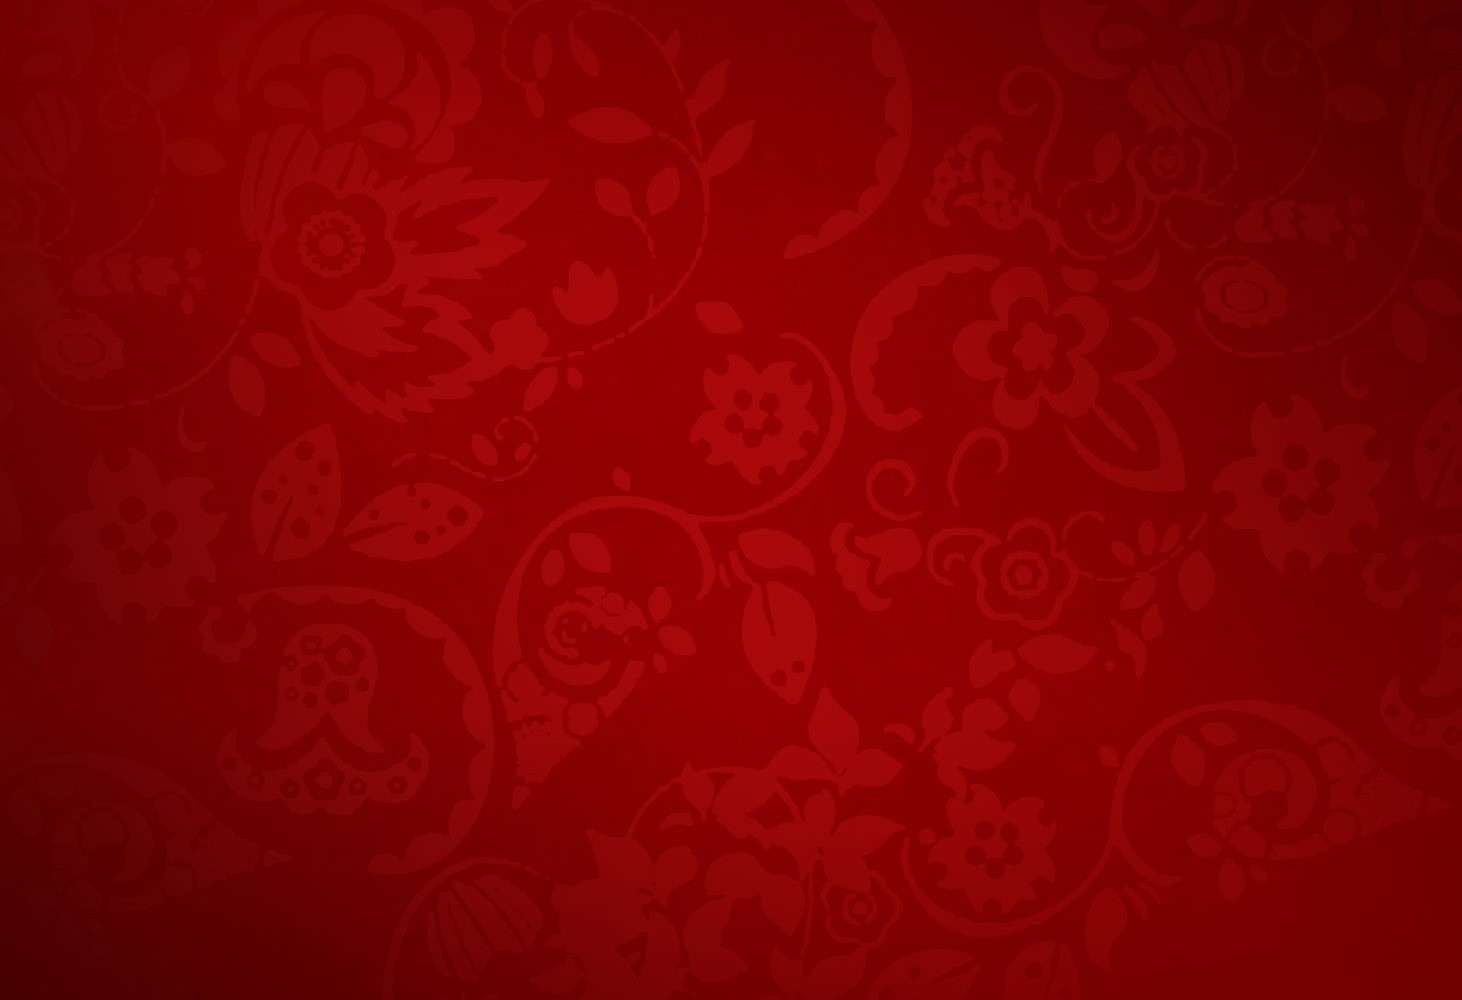 Dark Red Lunar New Year Background   Uffbits 1462x1000